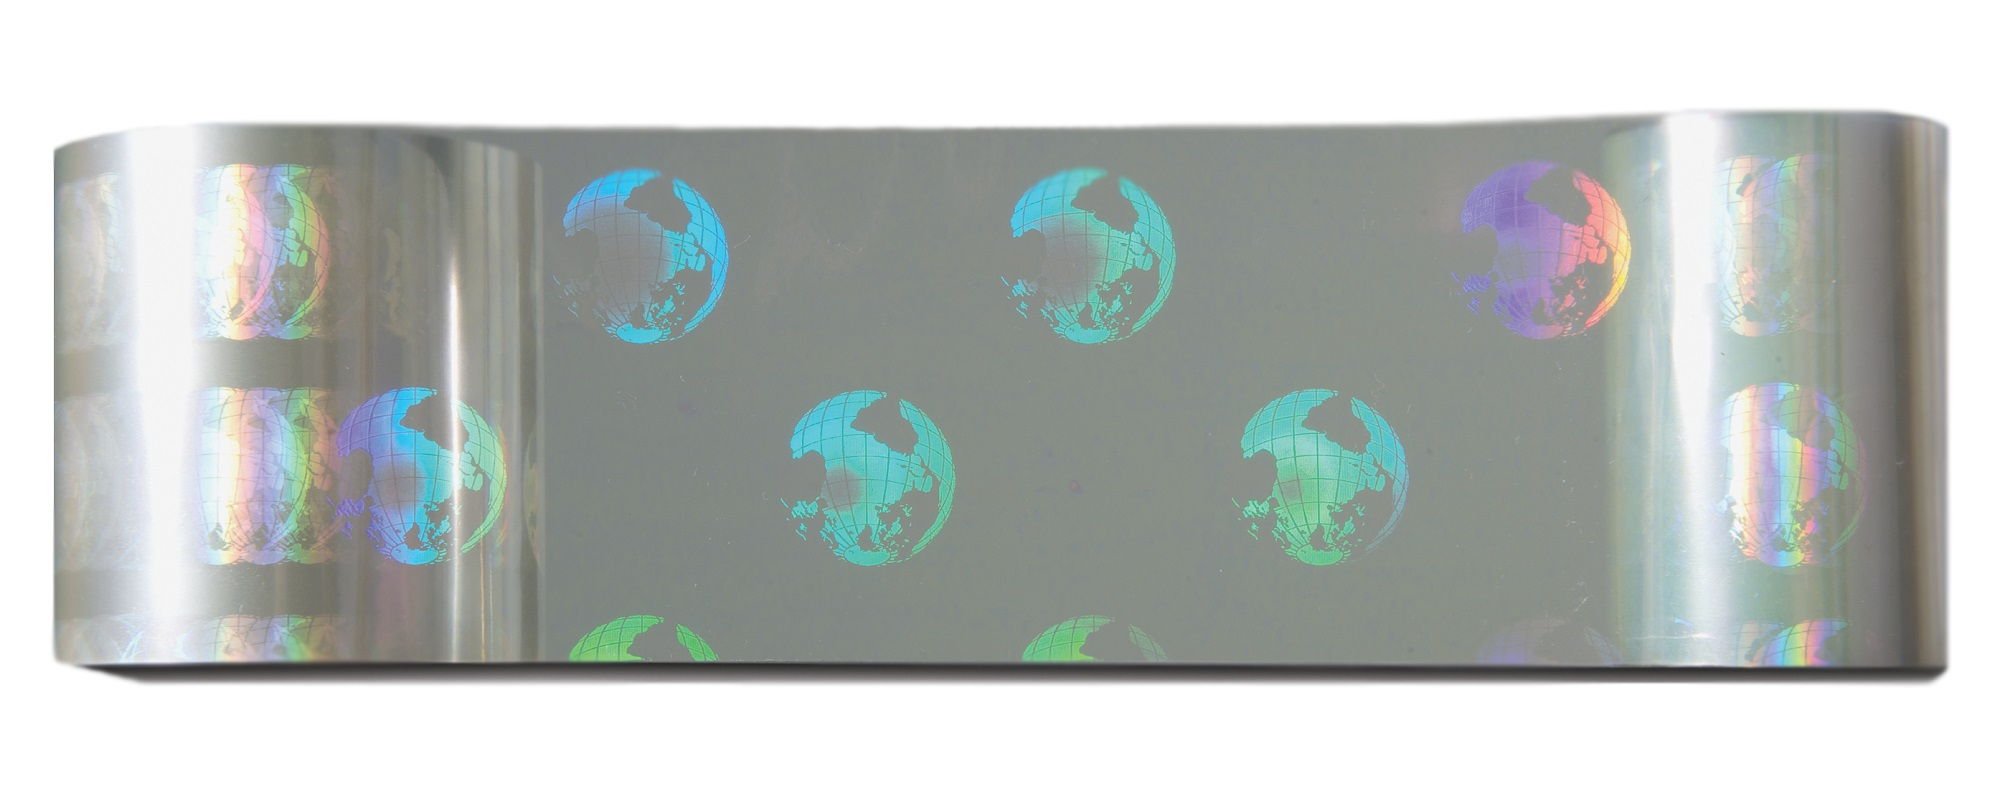 An image of M9007-234R Magicard 0.6mil Holographic Overlay Film